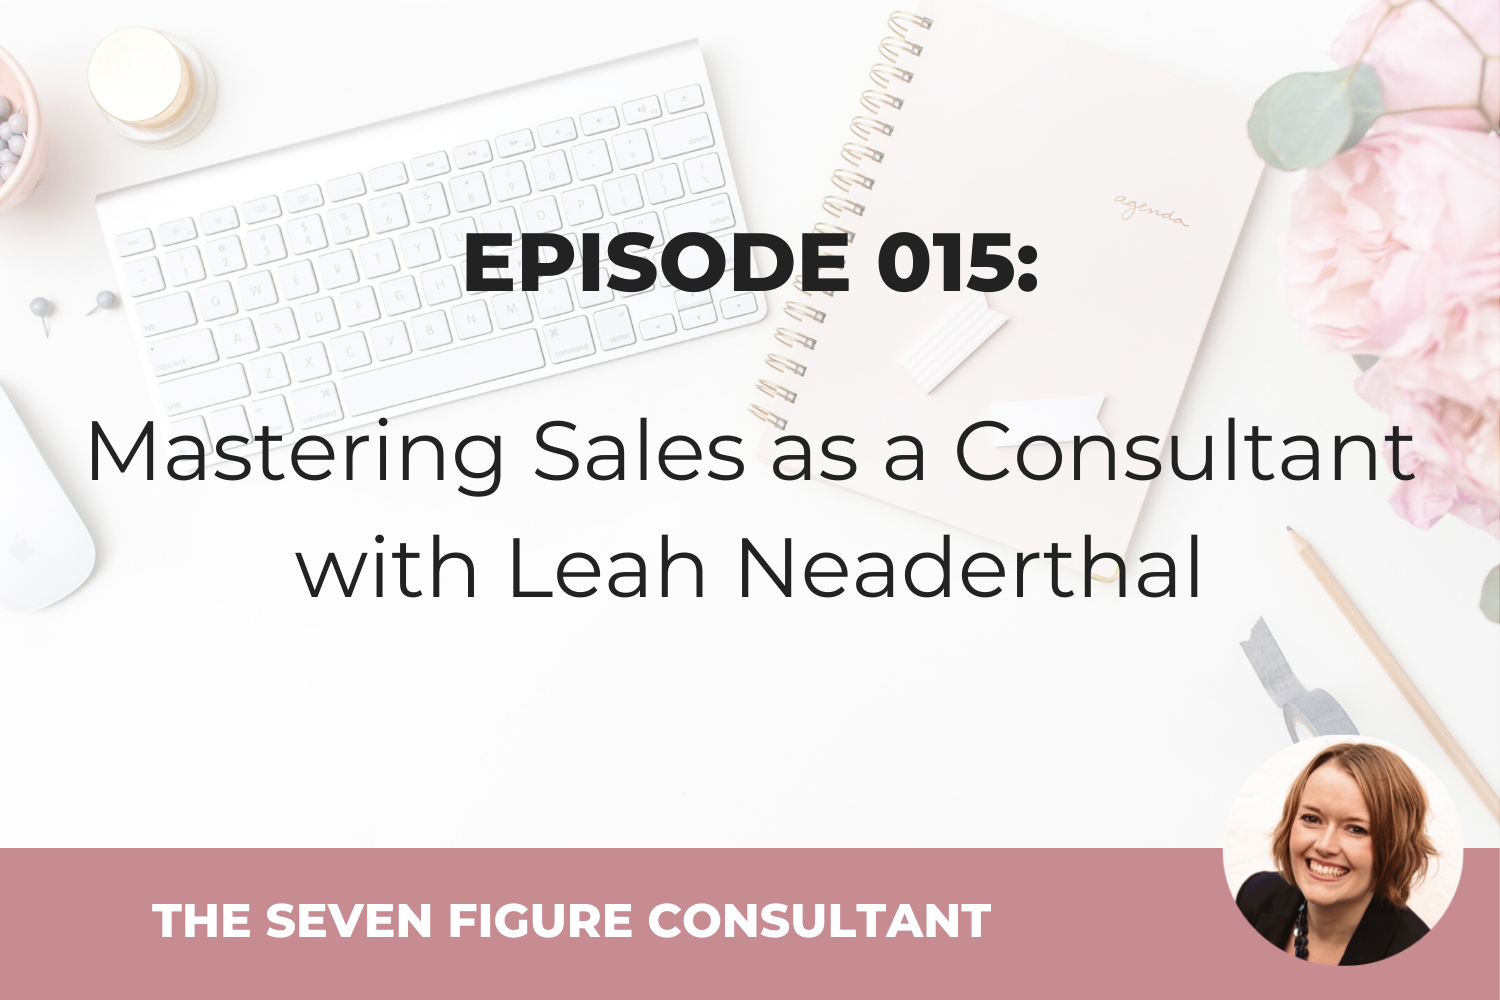 Episode 015: Mastering Sales as a Consultant with Leah Neaderthal